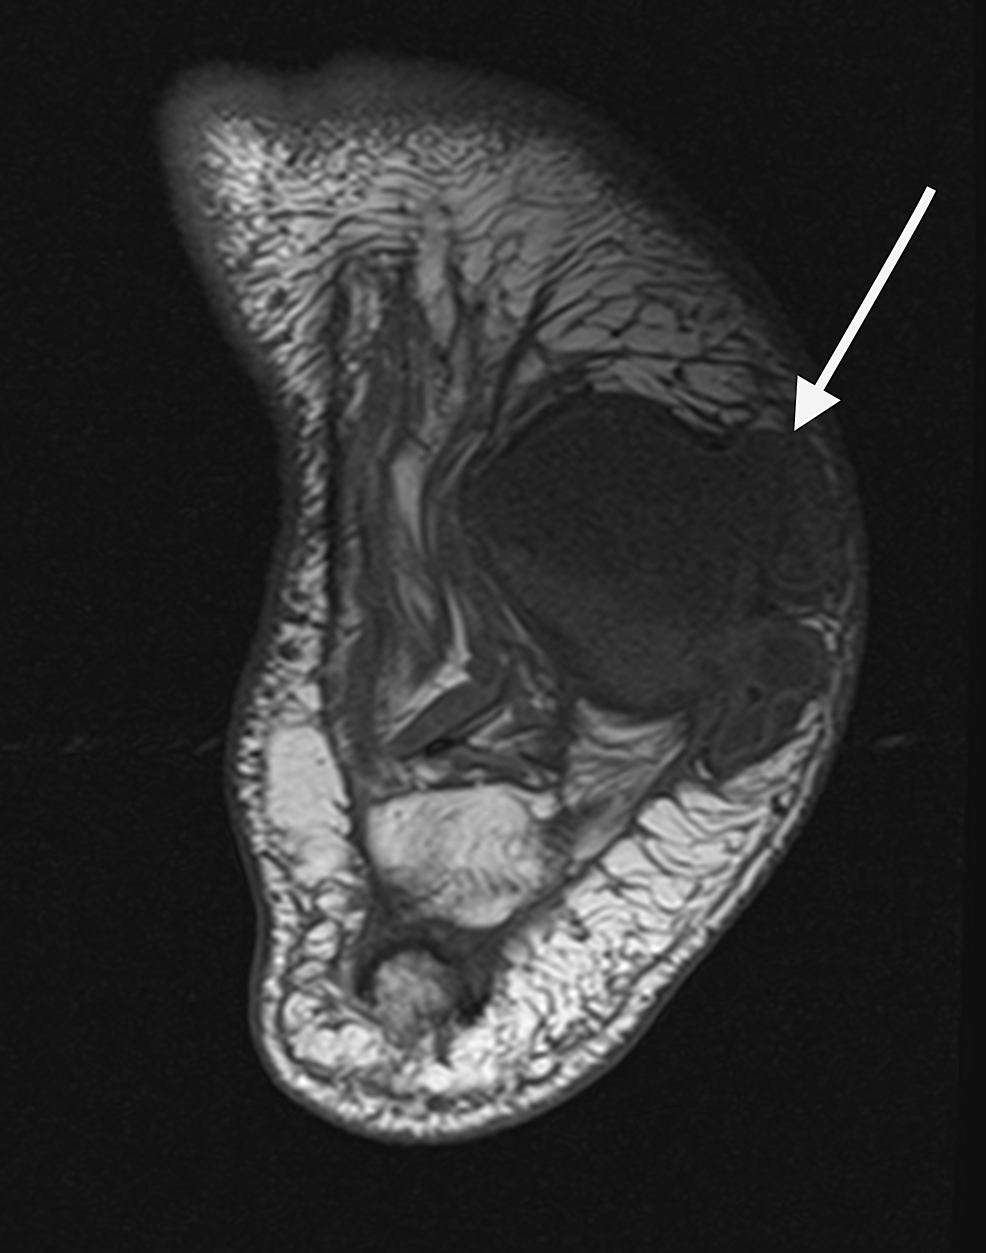 Axial-MRI-revealed-well-organized-fluid-filled-lesion-within-the-plantar-lateral-tissue-that-is-communicating-with-the-disrupted-joints-of-the-midfoot.